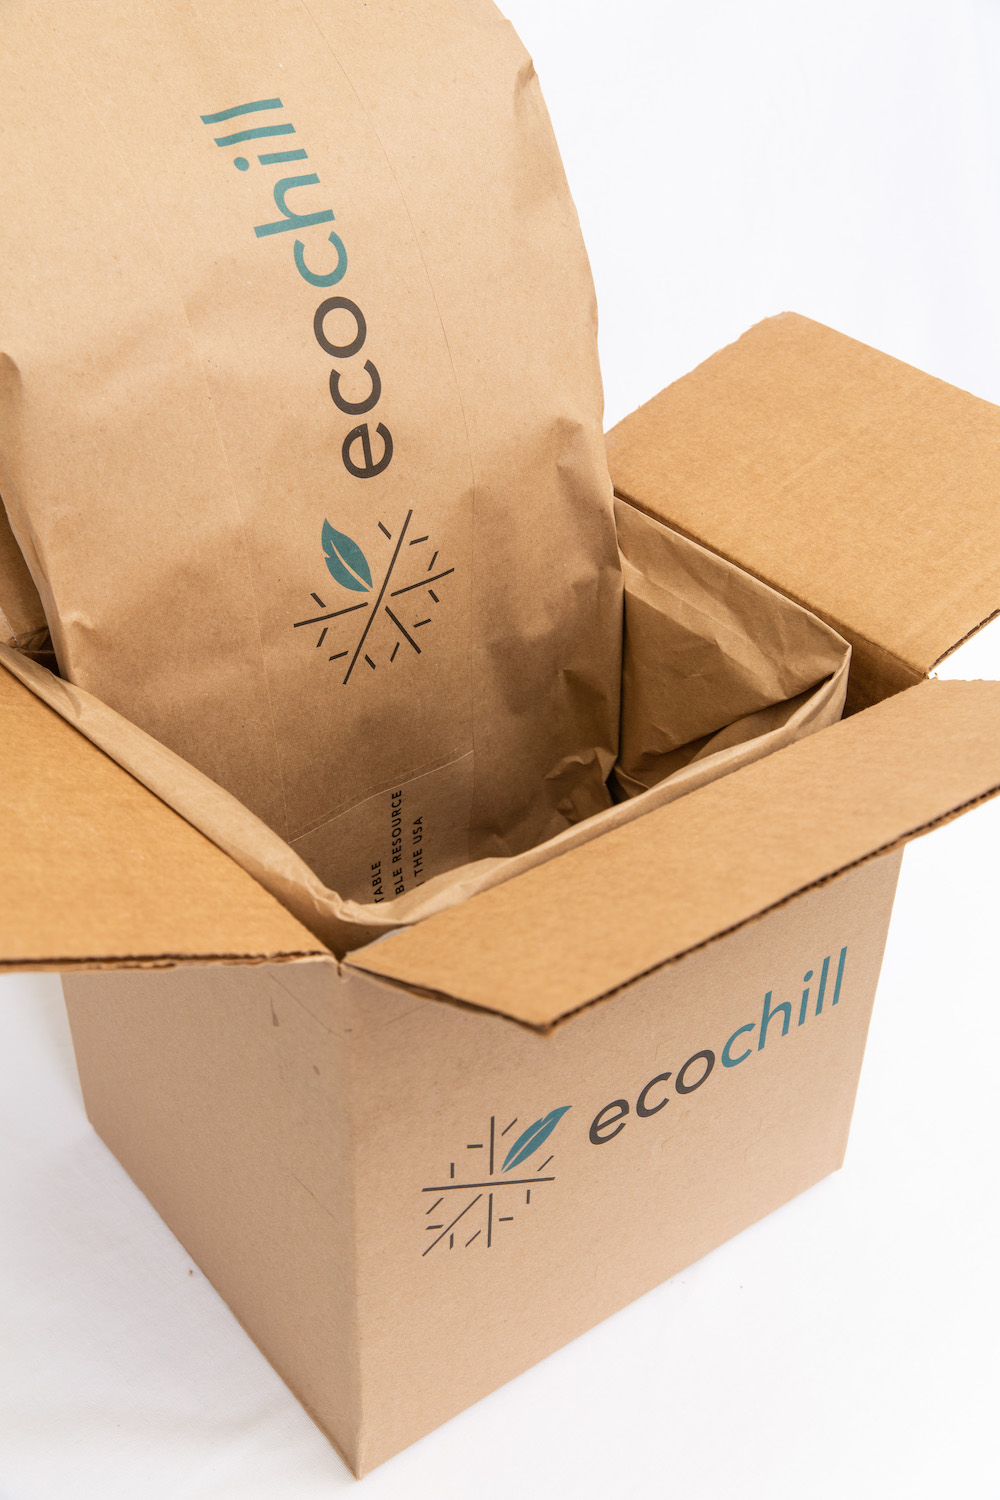 Ecochill packaging provides shock and vibration protection for fragile items such as glass and electronics